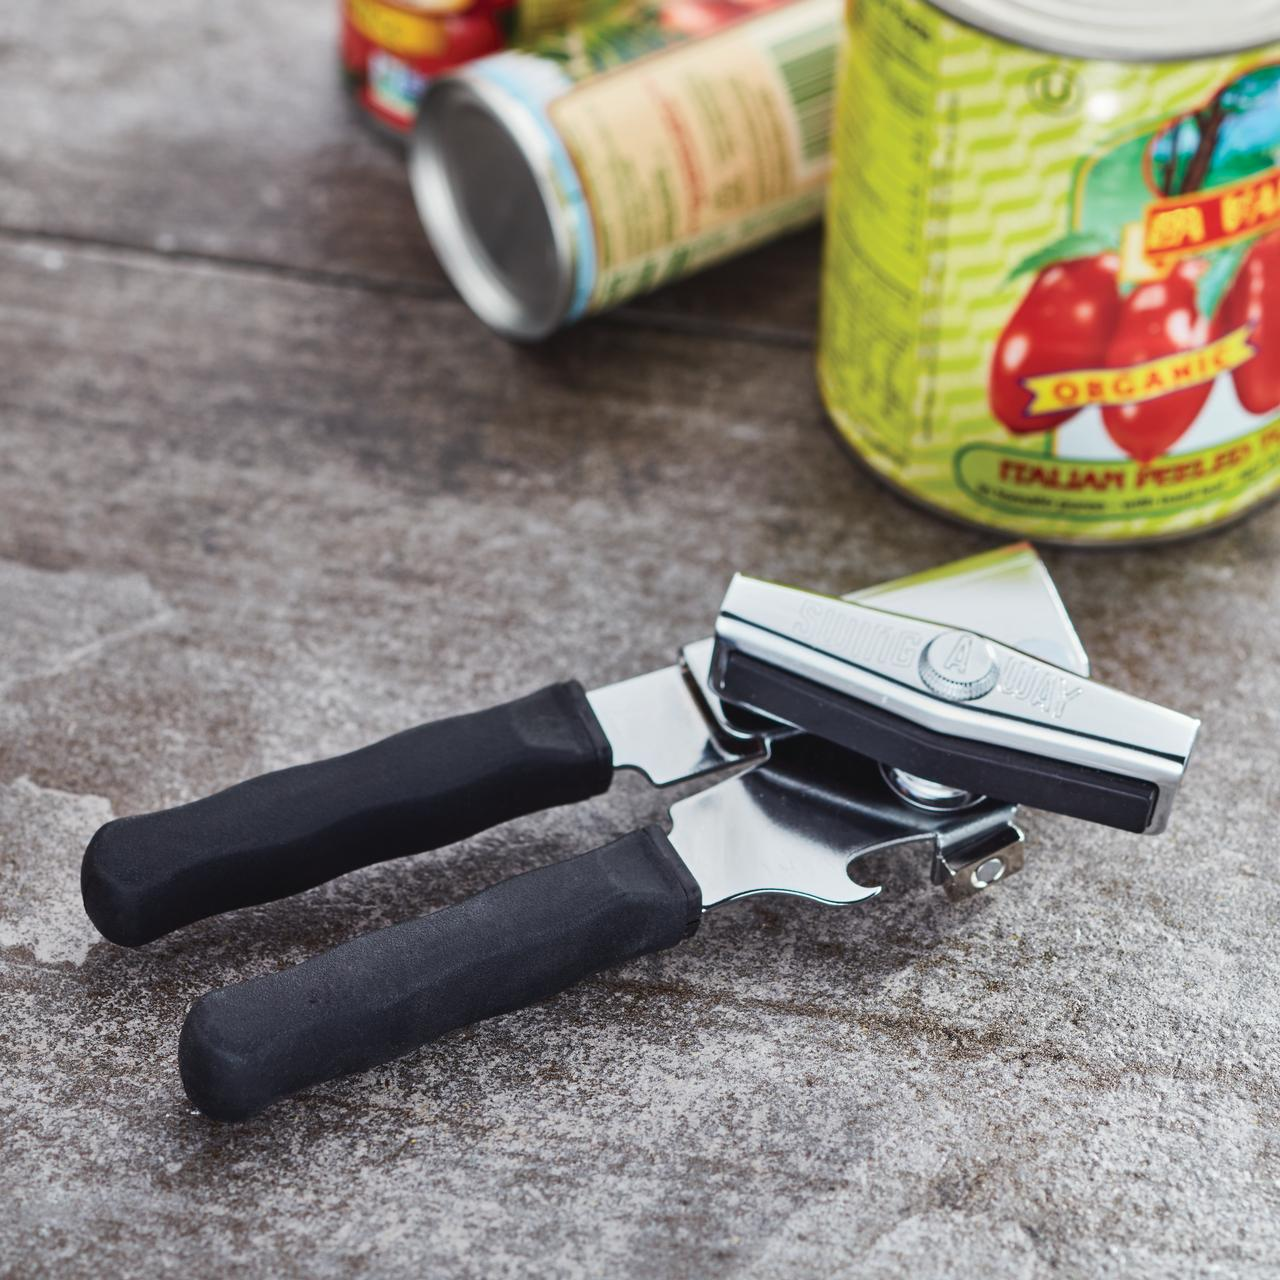 Swing-A-Way Ergo Black Can Opener with Silicone Handles